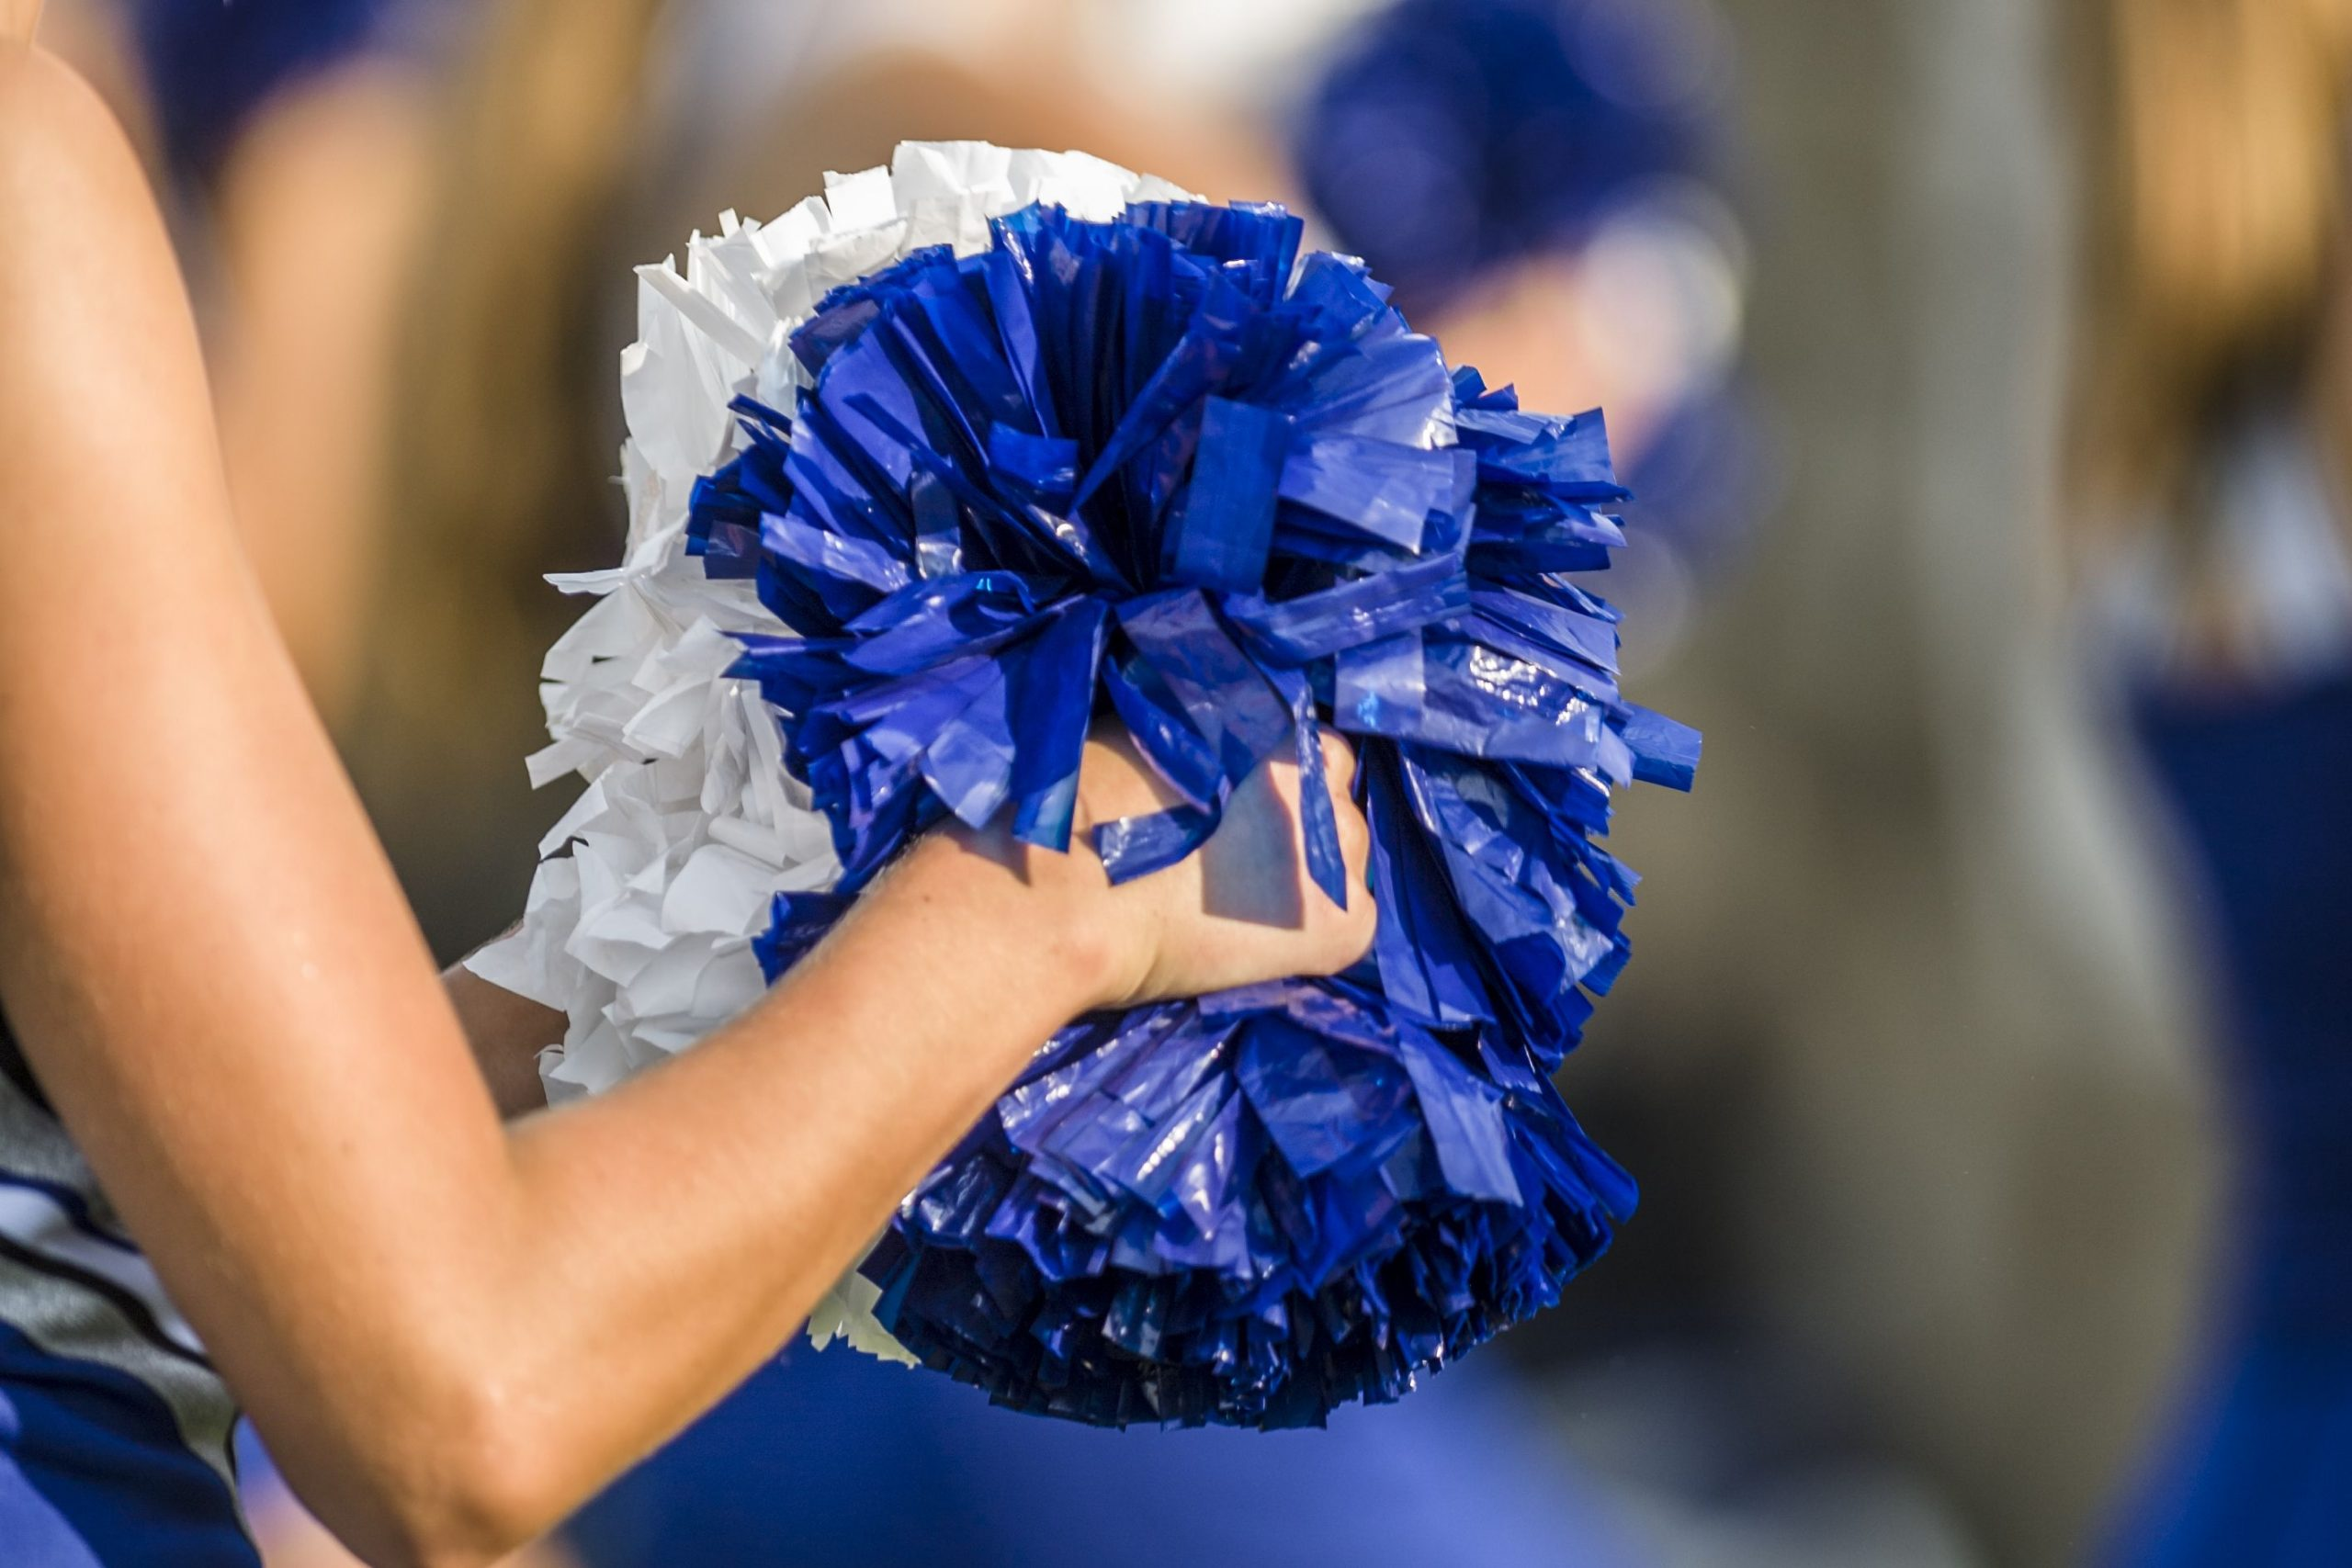 Woman allegedly made deepfakes to kick rivals off daughter's cheerleading squad